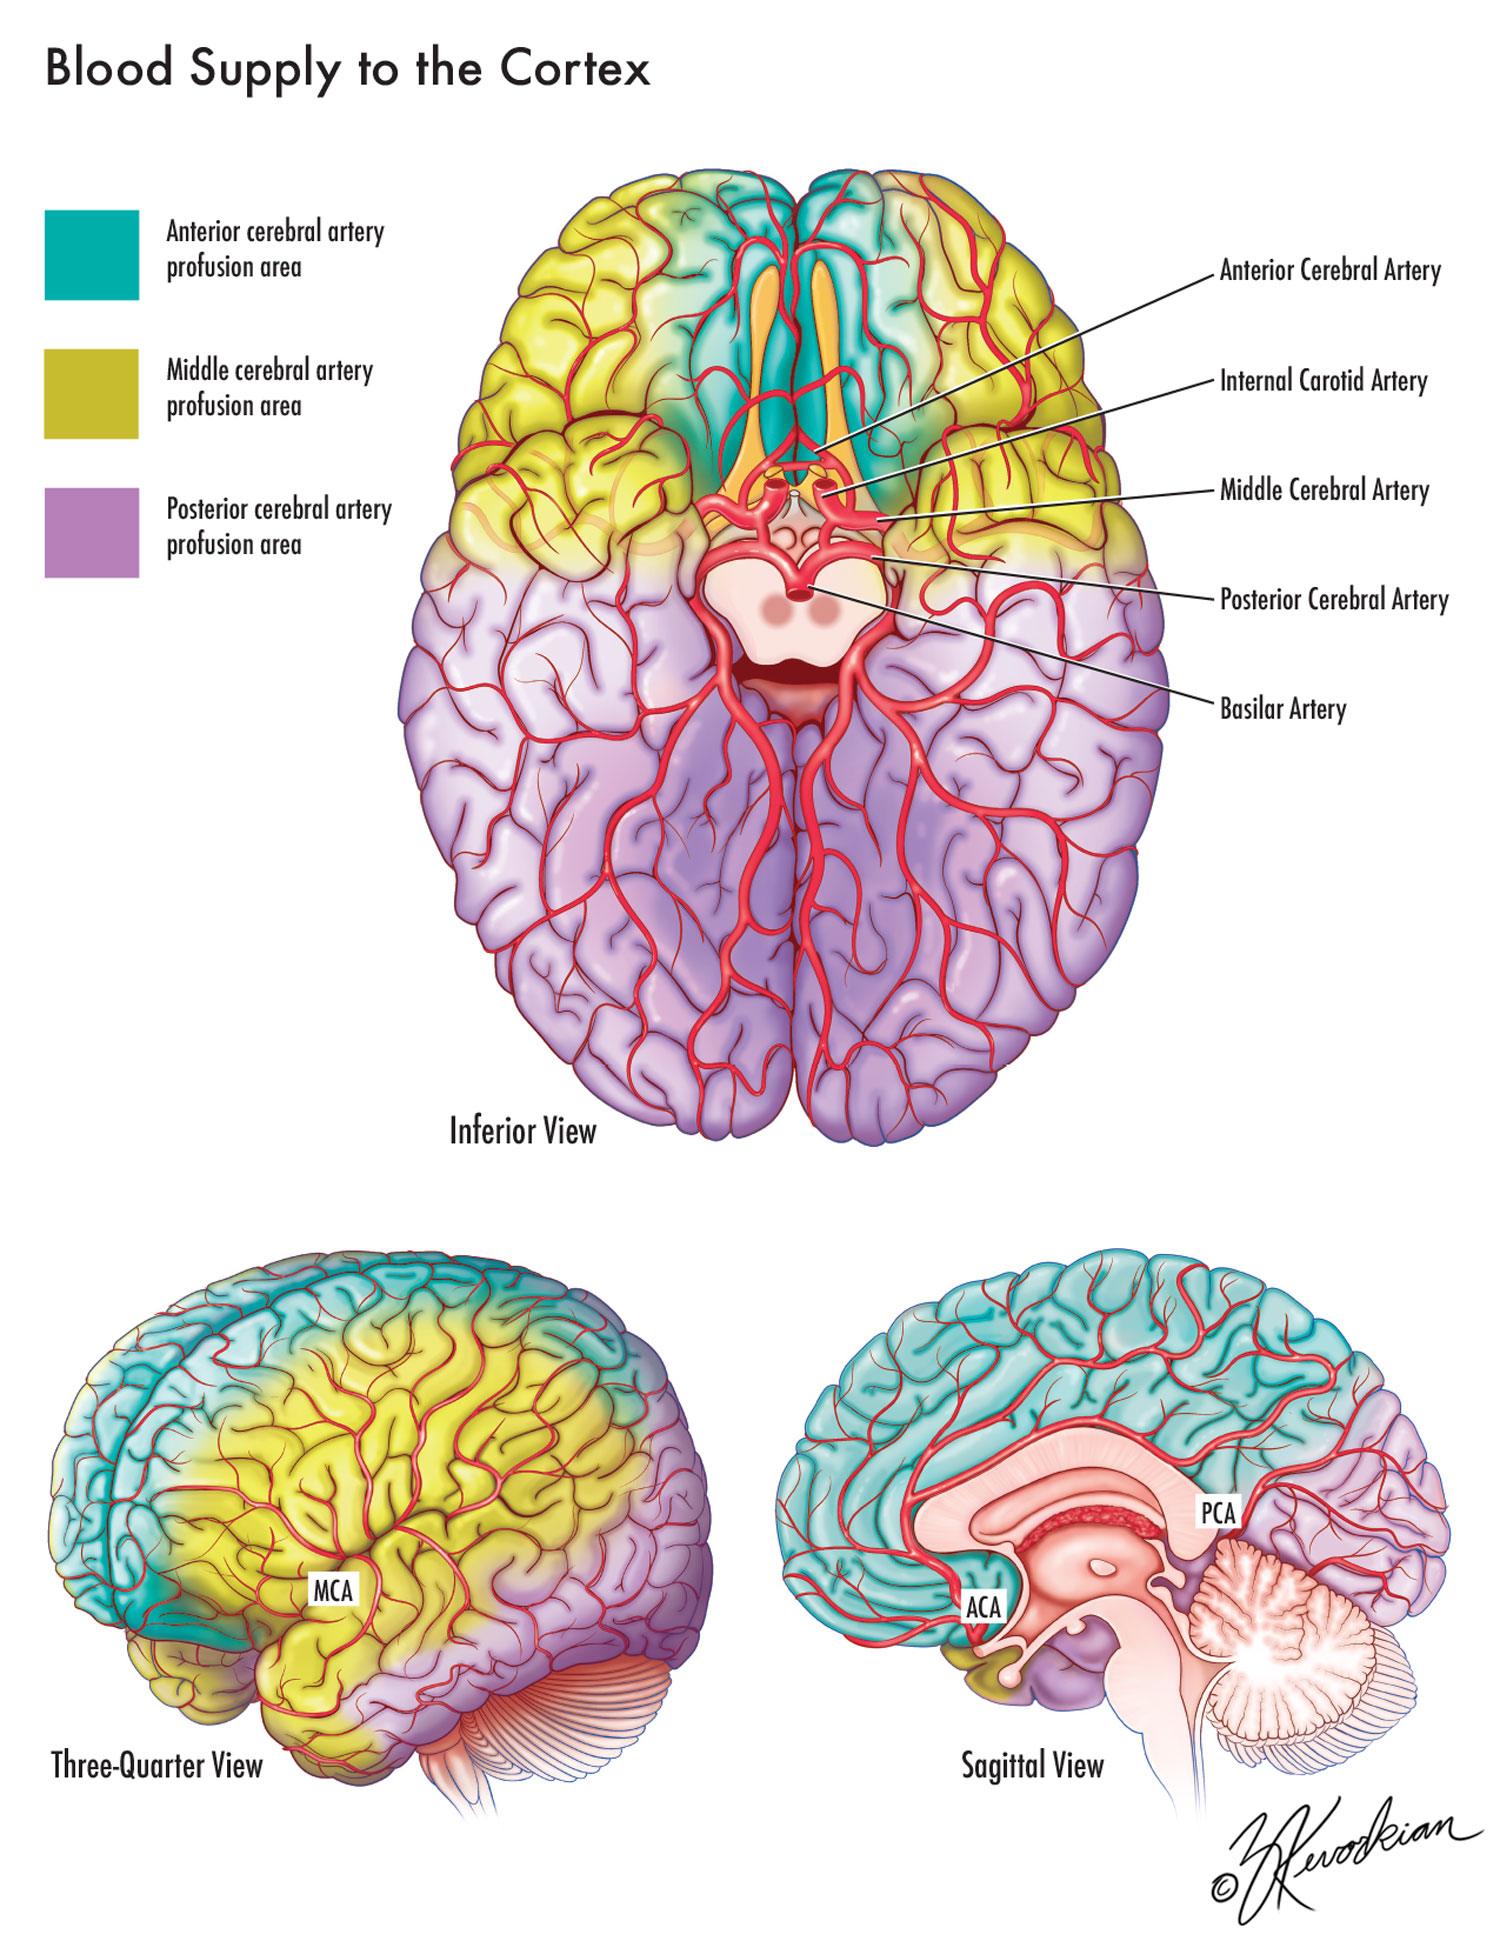 Blood Supply of the Cortex